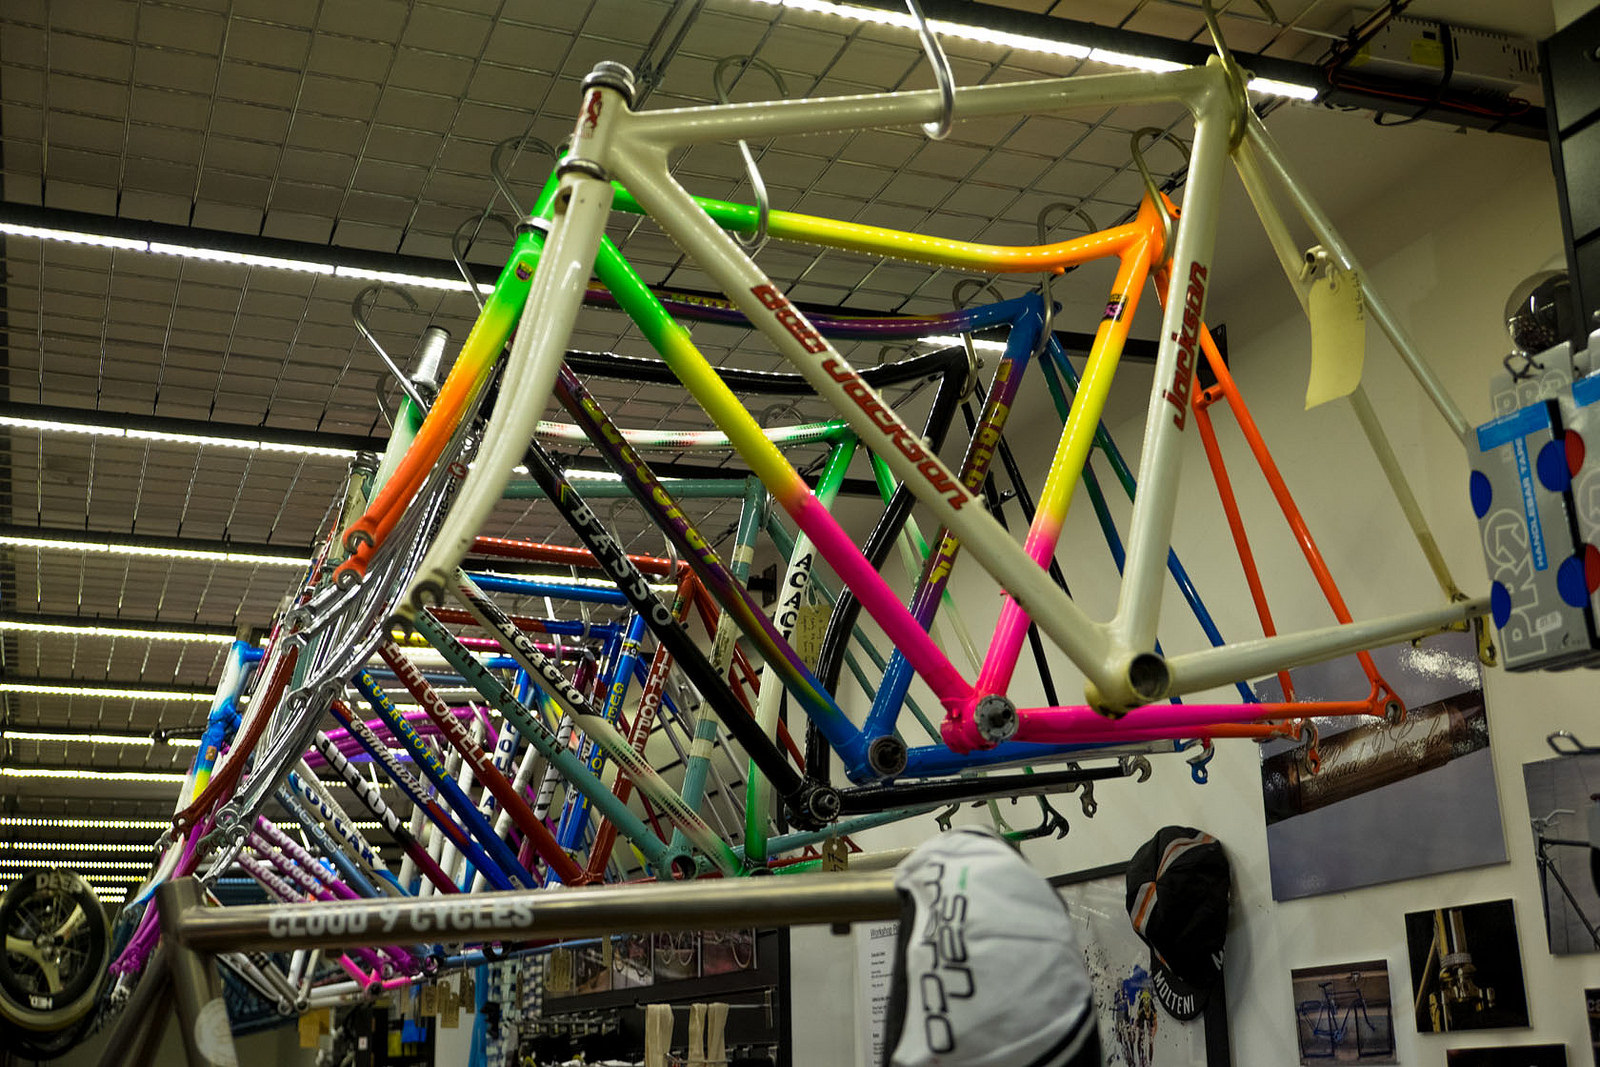 Bike Frames at Cloud 9 Cycles